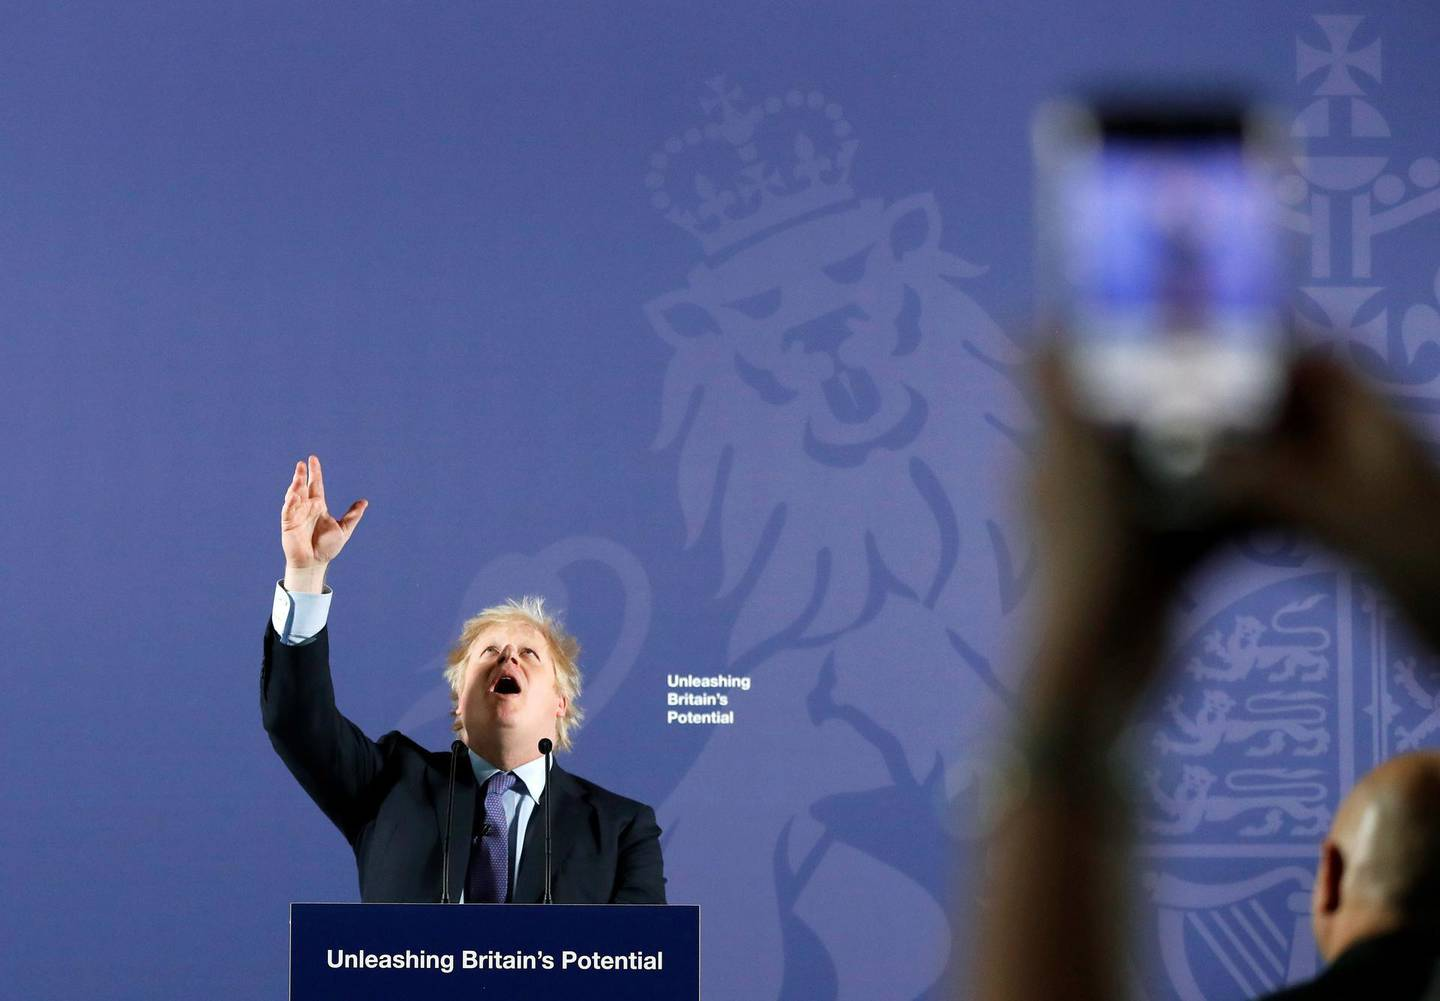 """TOPSHOT - Britain's Prime Minister Boris Johnson reacts as he delivers a speech at the Old Royal Naval College in Greenwich, south east London on February 3, 2020. Britain on Monday said it wanted a """"thriving trade and economic relationship"""" with the European Union, as it set out its position for future trade talks after it left the bloc. But Prime Minister Boris Johnson pledged: """"We will not engage in some cut-throat race to the bottom. We are not leaving the EU to undermine European standards. We will not engage in any kind of dumping, whether commercial, social or environmental."""" / AFP / POOL / AP / Frank Augstein"""